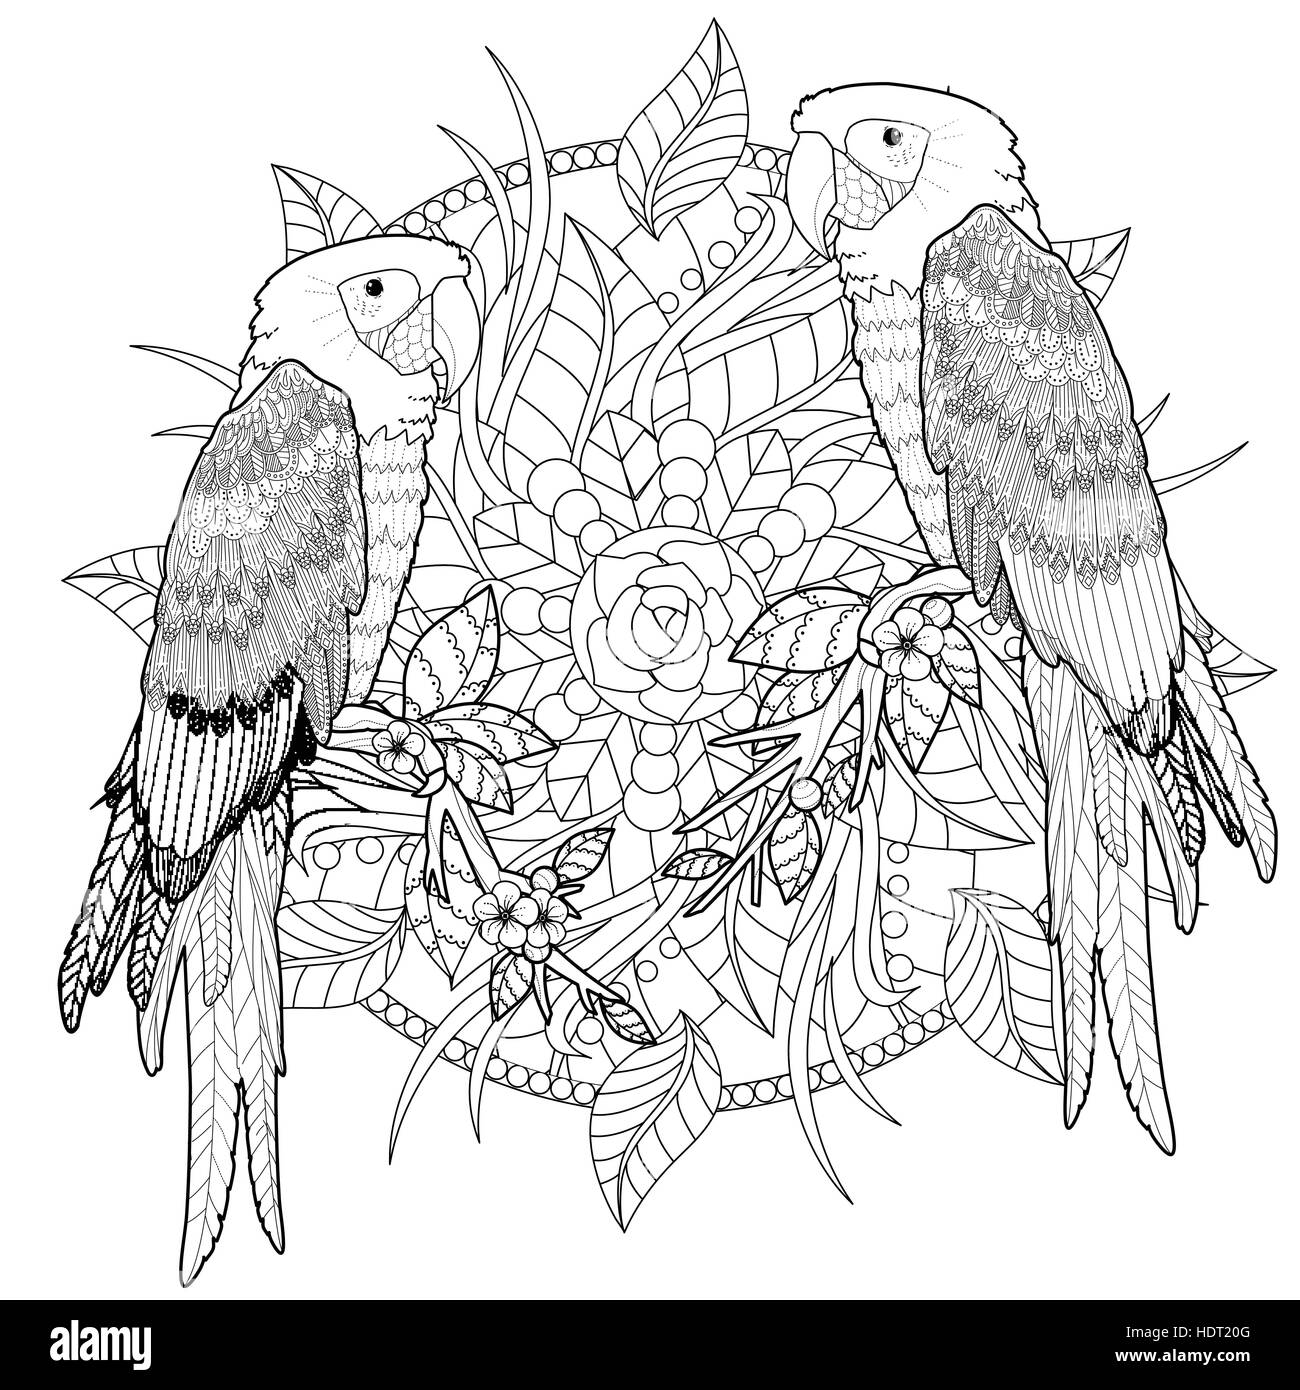 Lovely Parrot Coloring Page In Exquisite Style Stock Vector Art